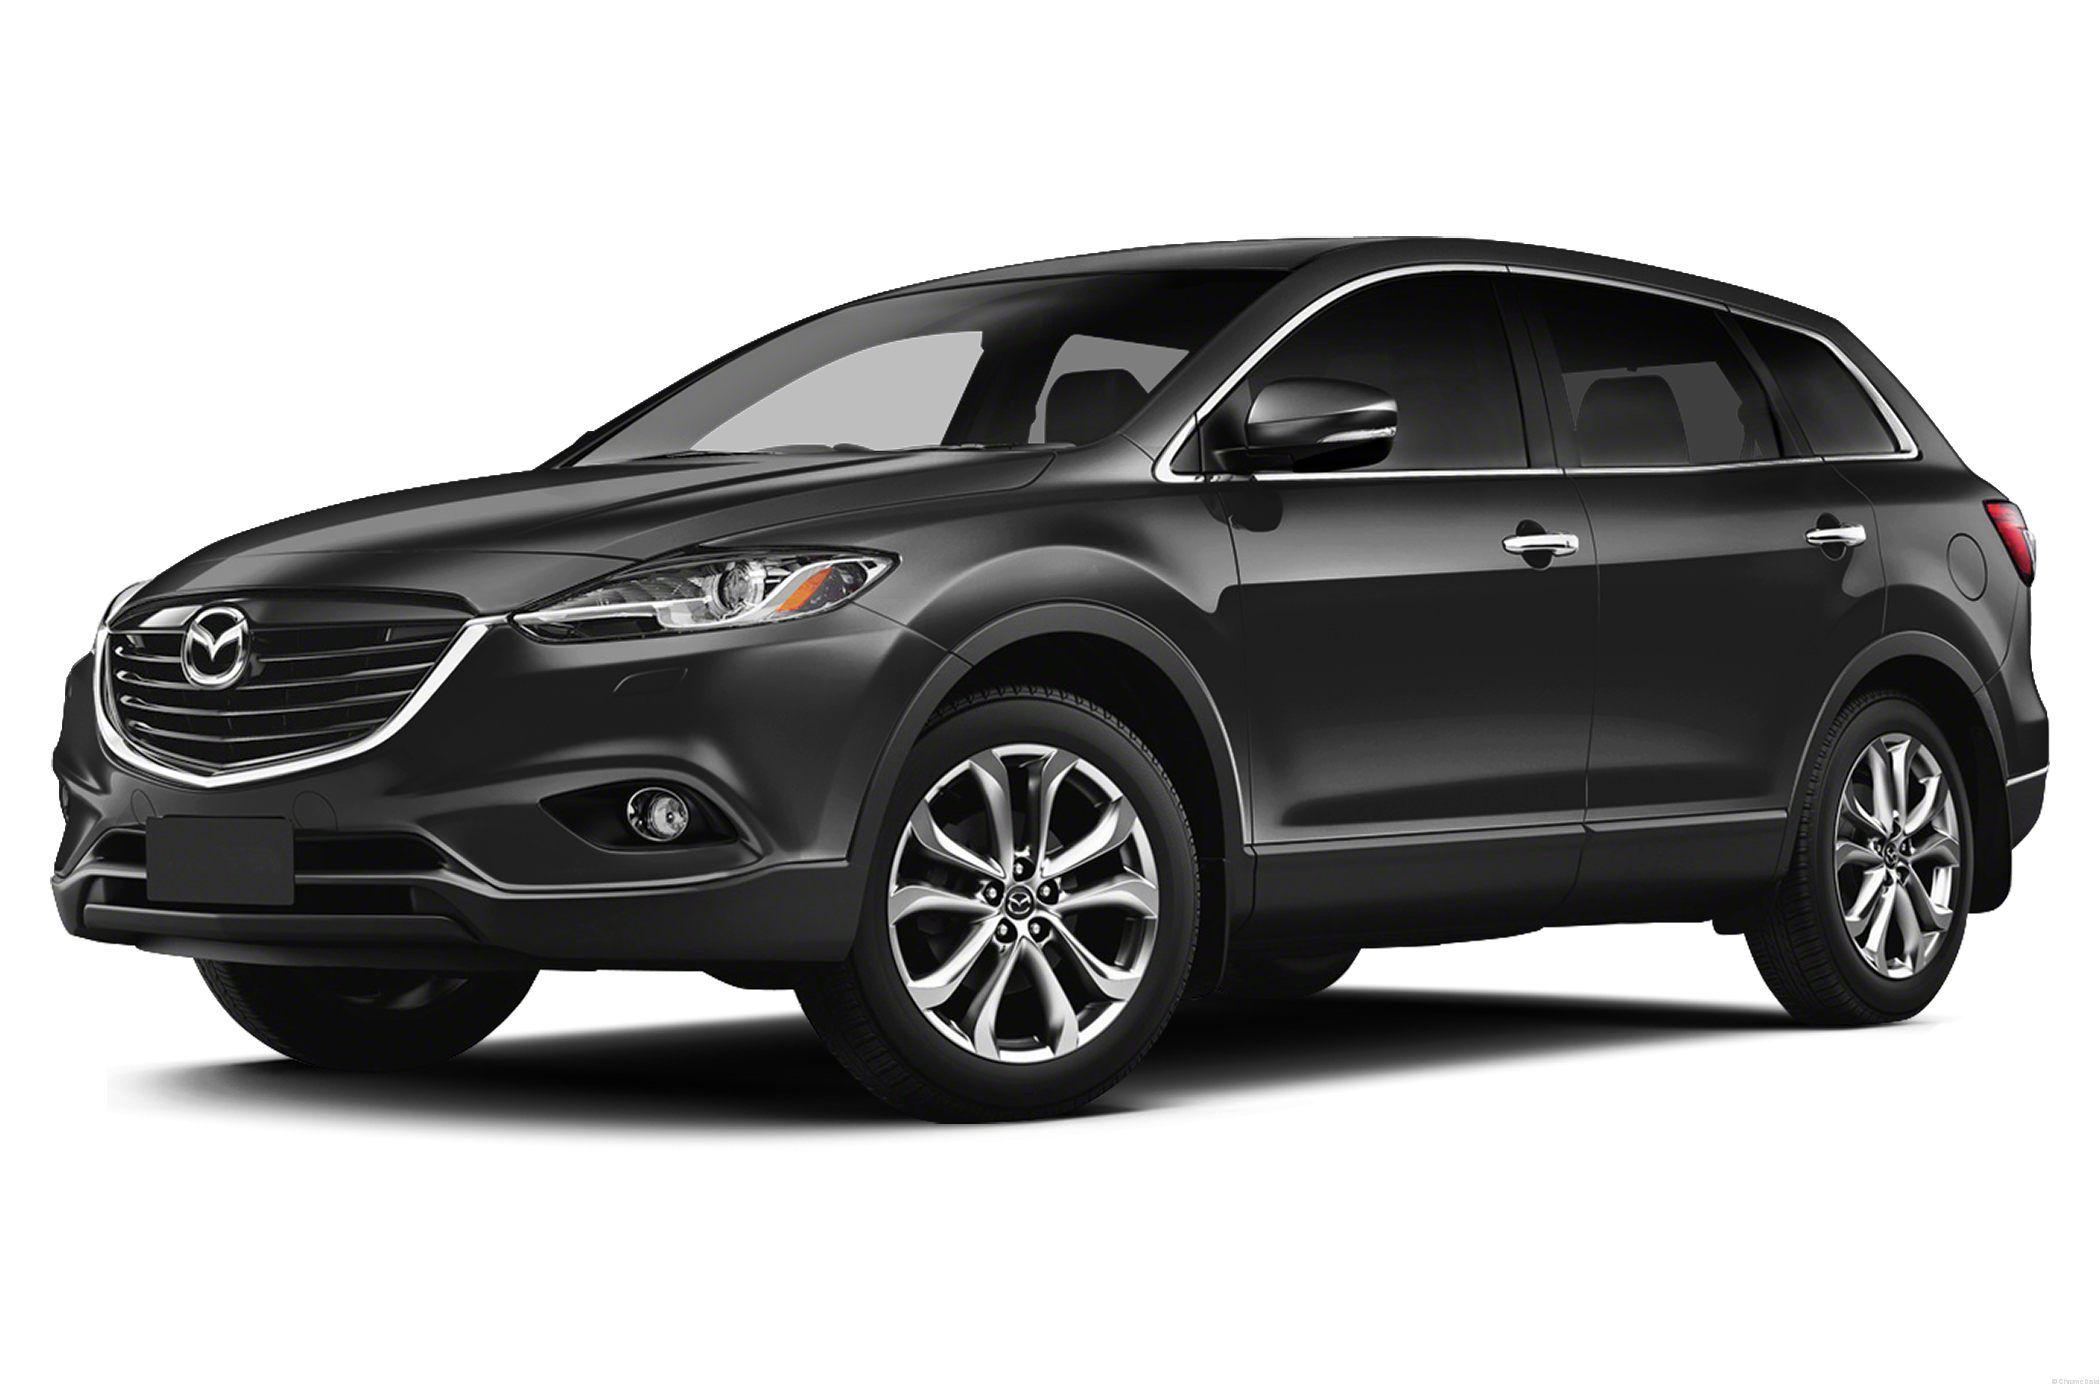 2013 mazda cx 9 photos informations articles. Black Bedroom Furniture Sets. Home Design Ideas